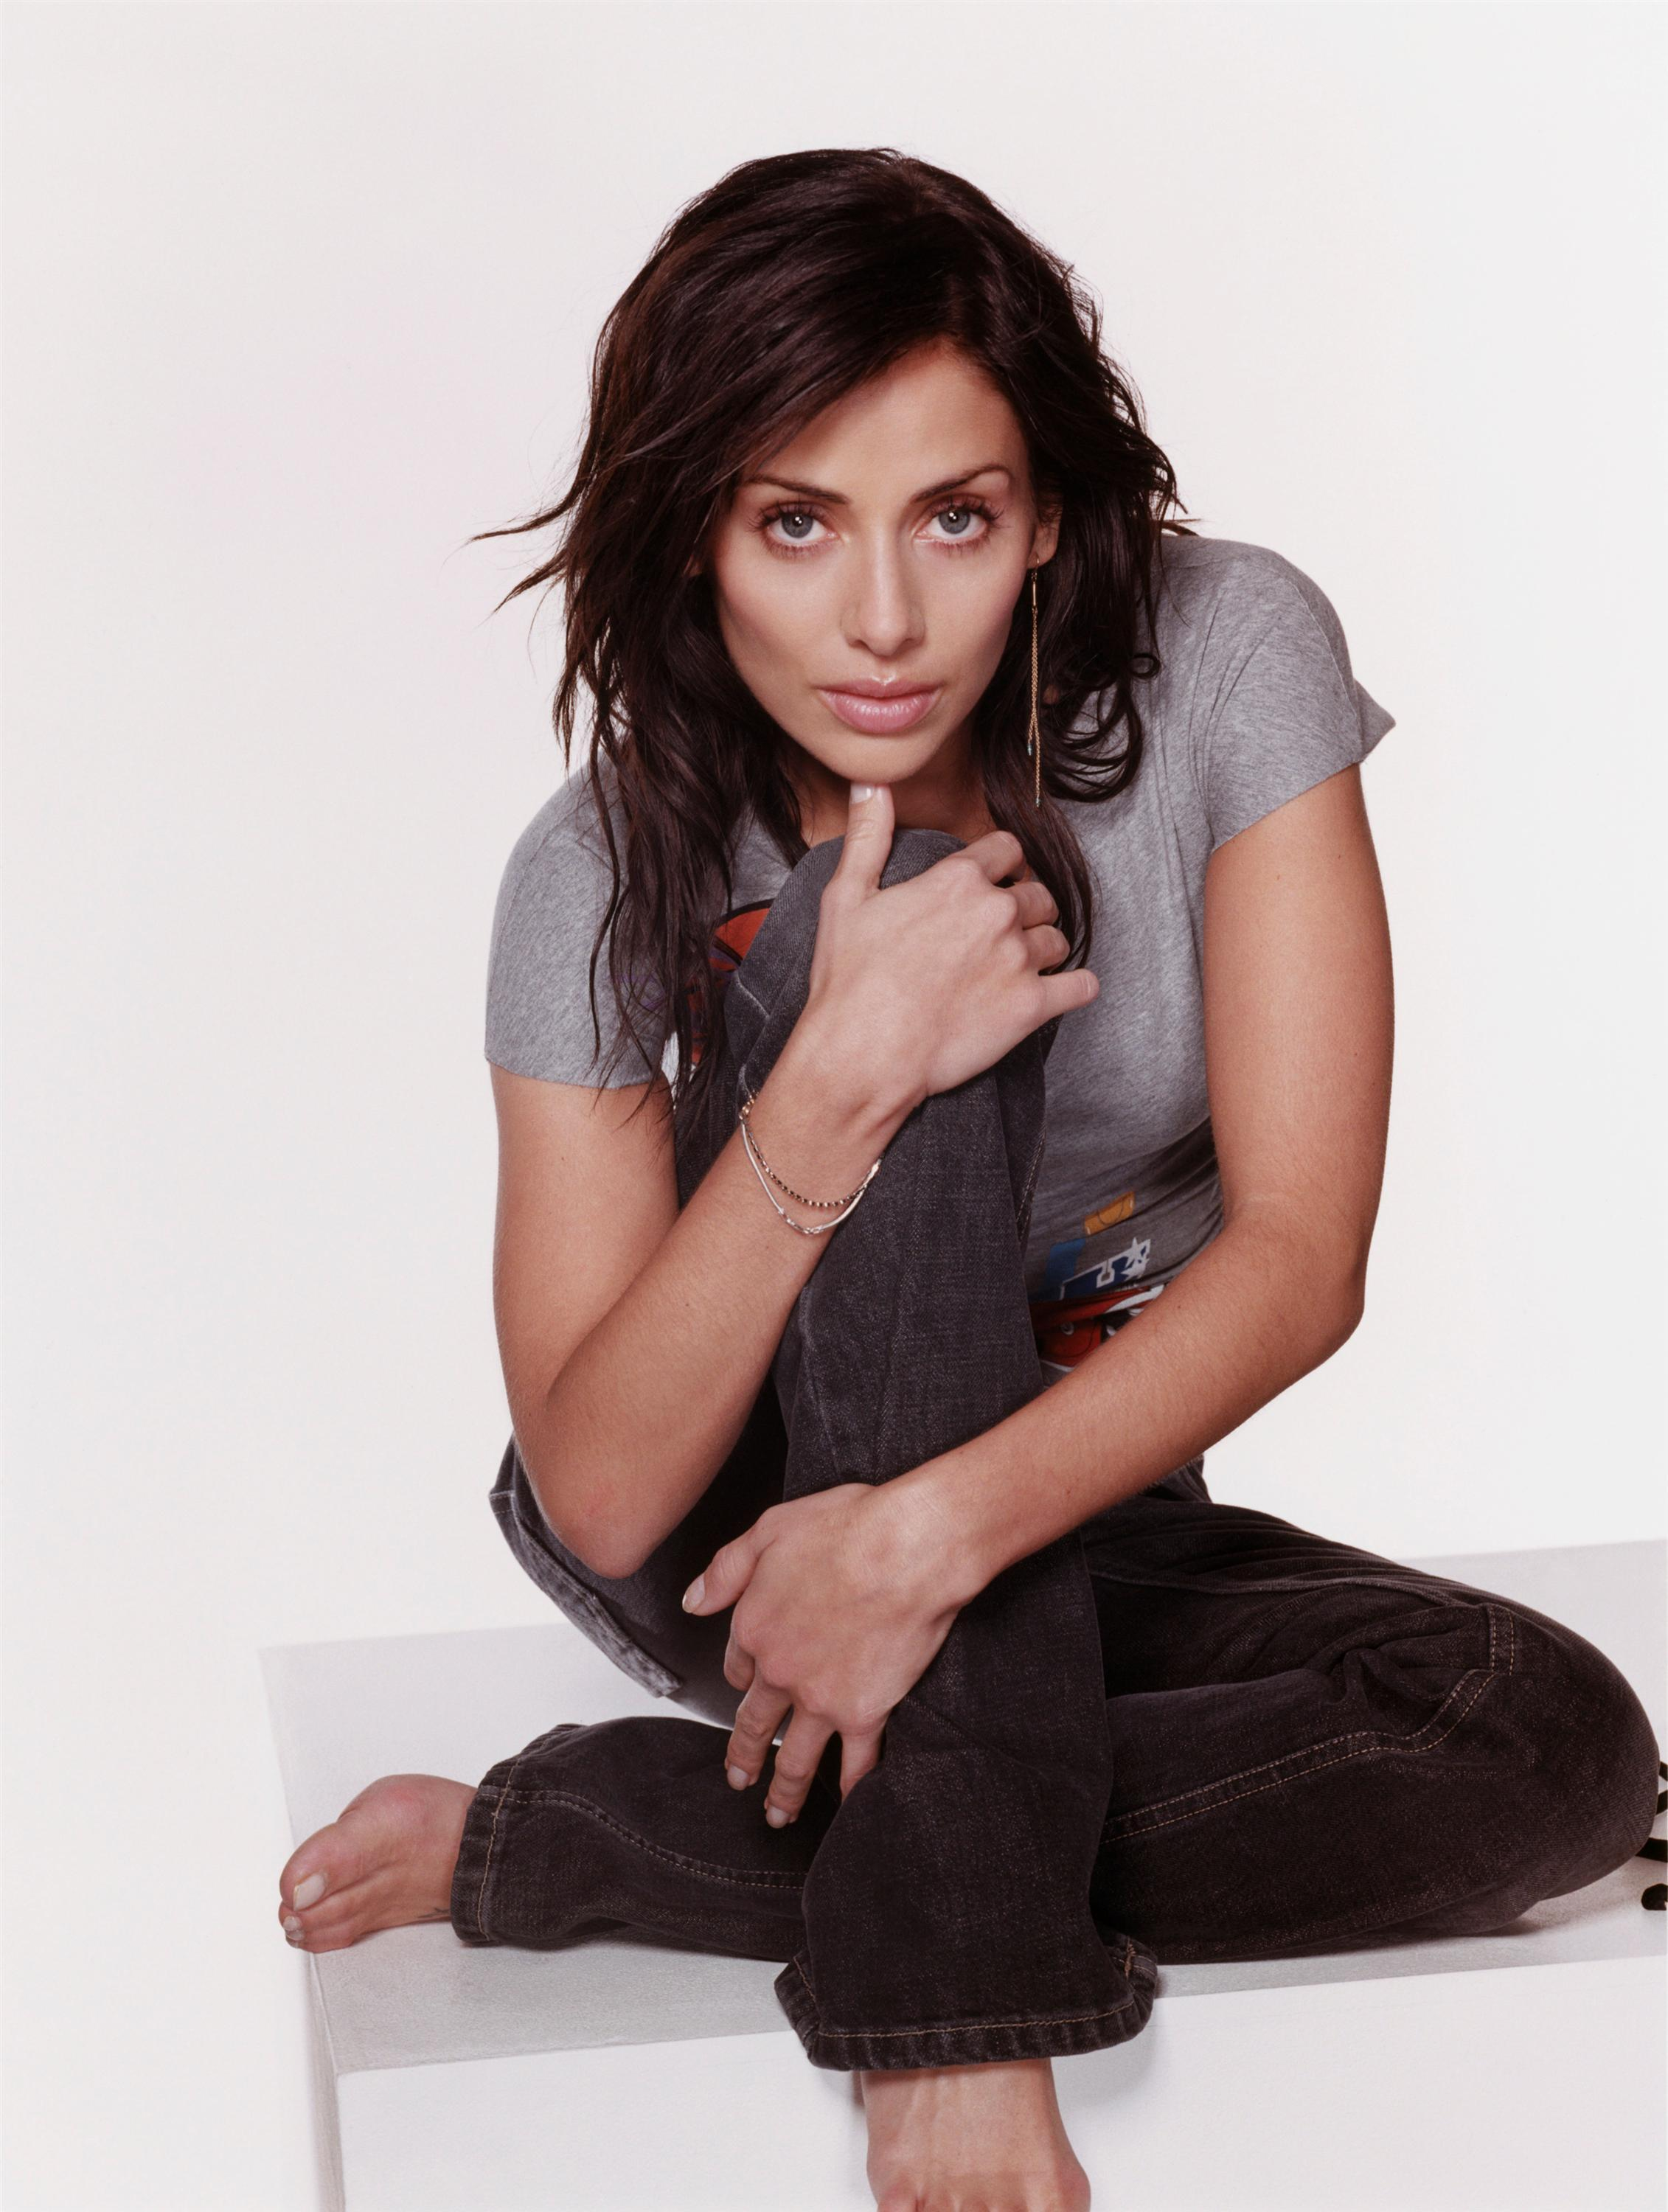 Feet Natalie Imbruglia nudes (77 images), Sexy